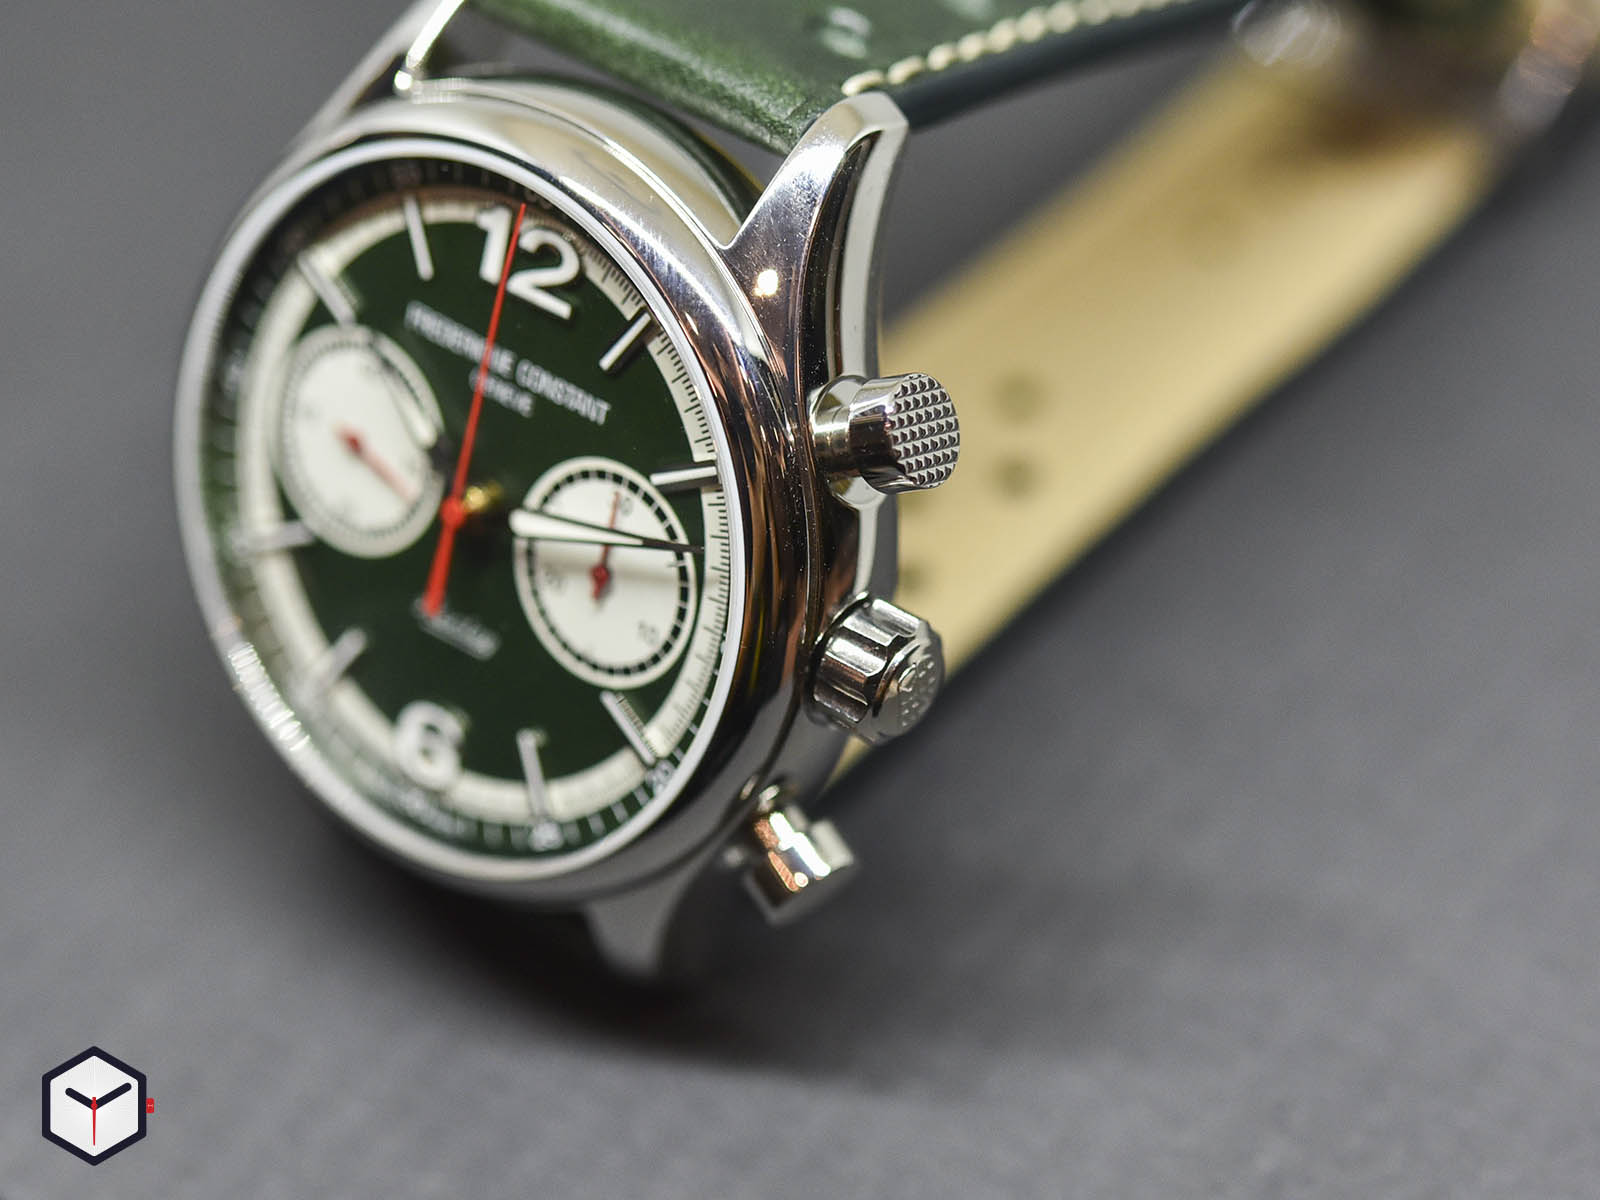 fc-397hgr5b6-frederique-constant-vintage-rally-healey-chronograph-3.jpg